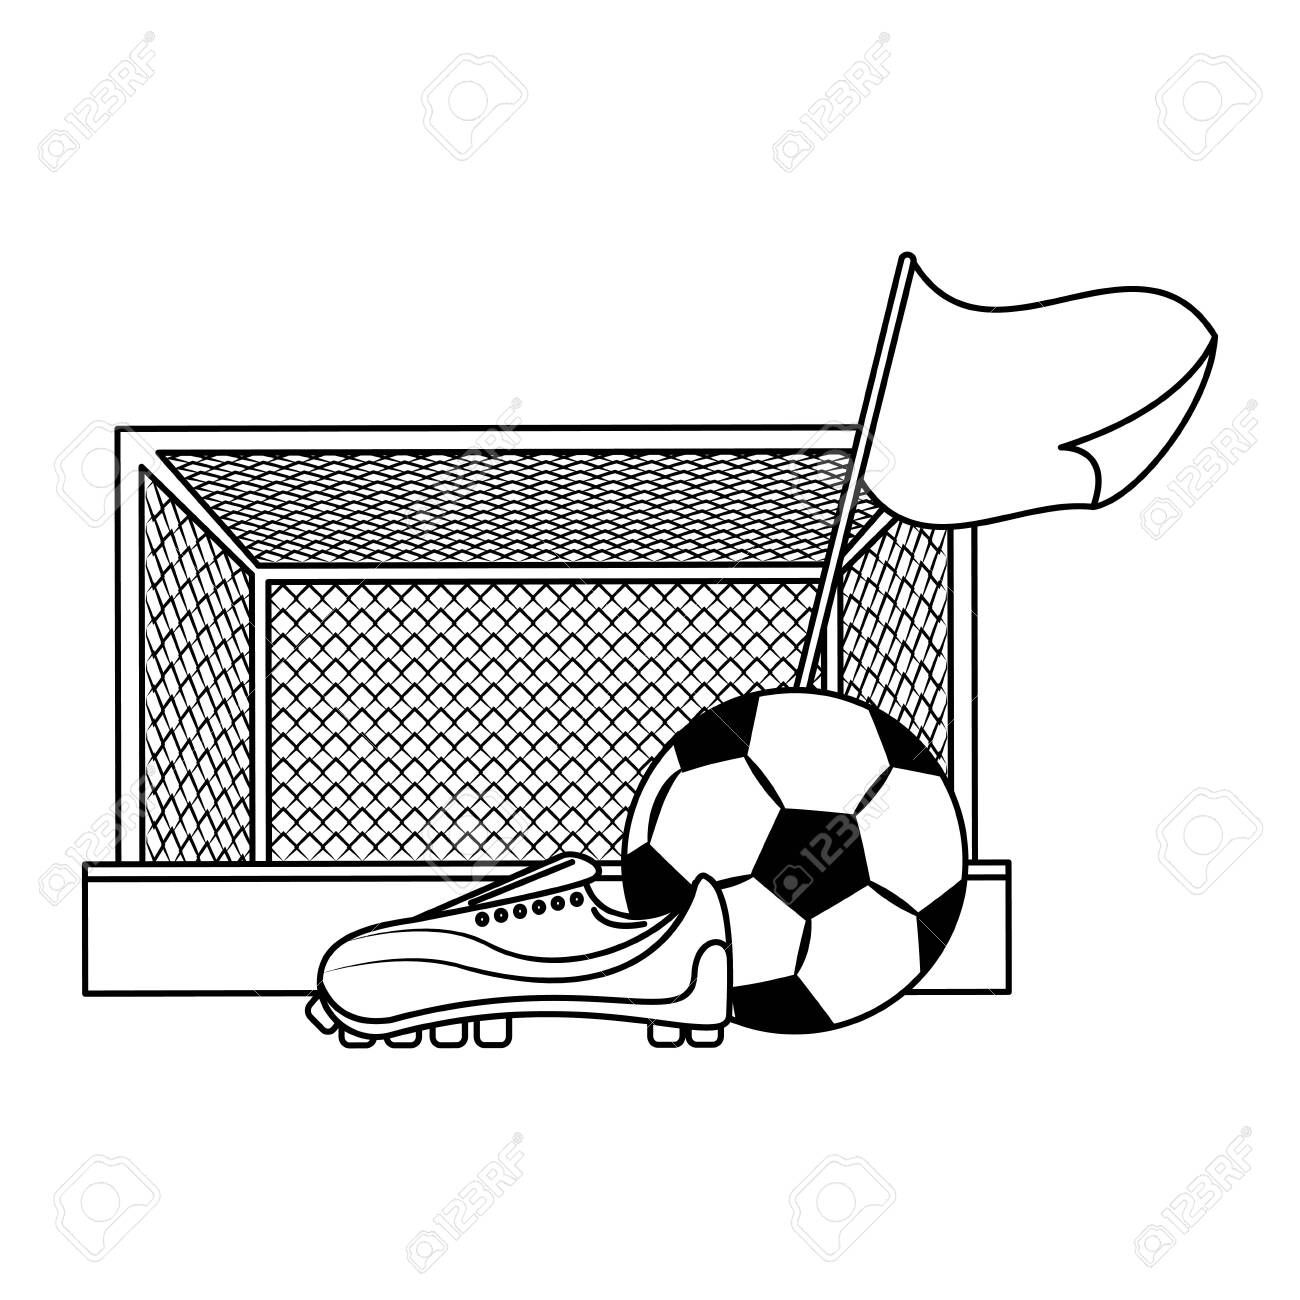 Soccer Football Sport Game Competition Play Activity Field And Game Objects Cartoon Vector Illustration Grap Competition Games Cartoons Vector Play Activities